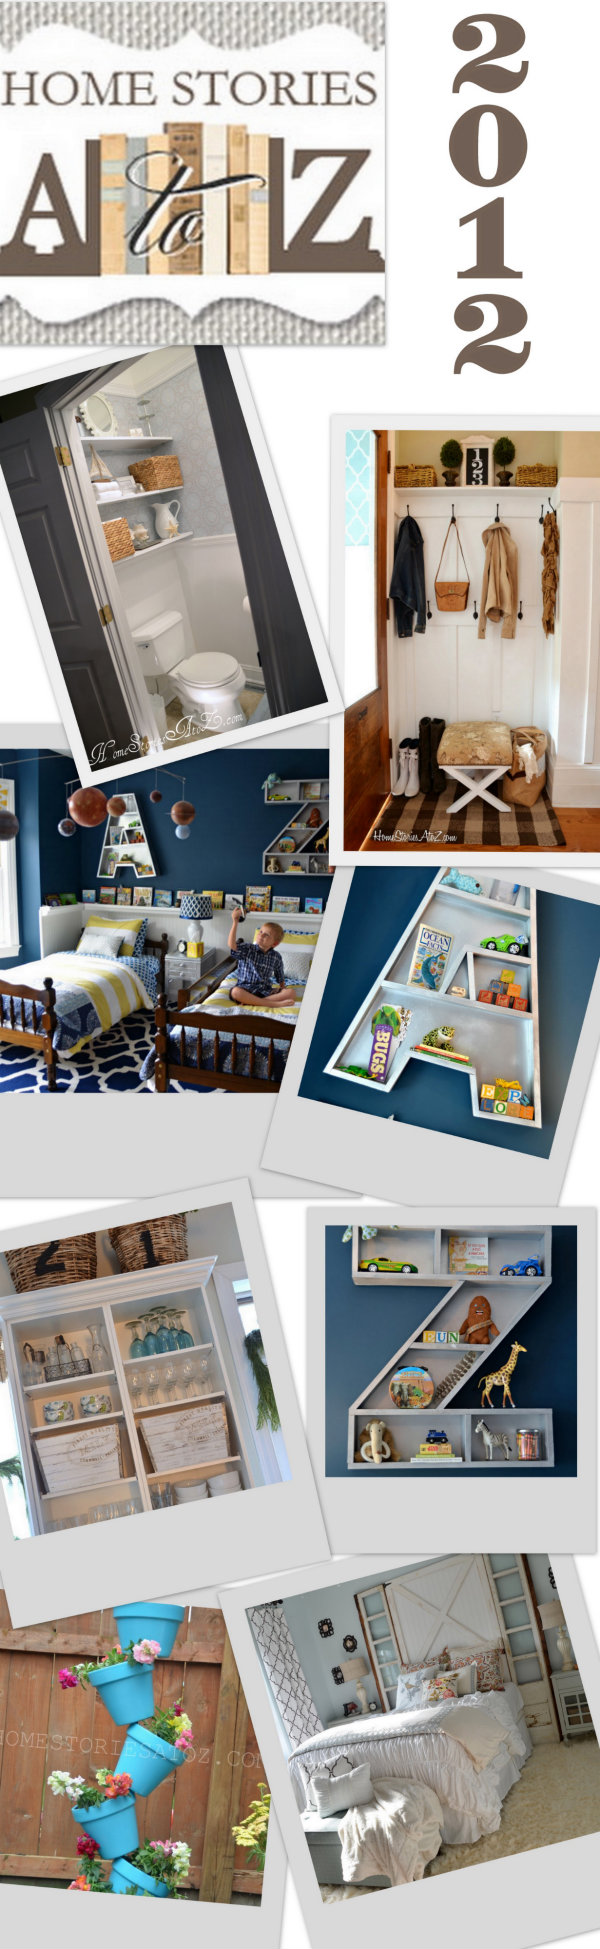 Home Stories A to Z DIY projects